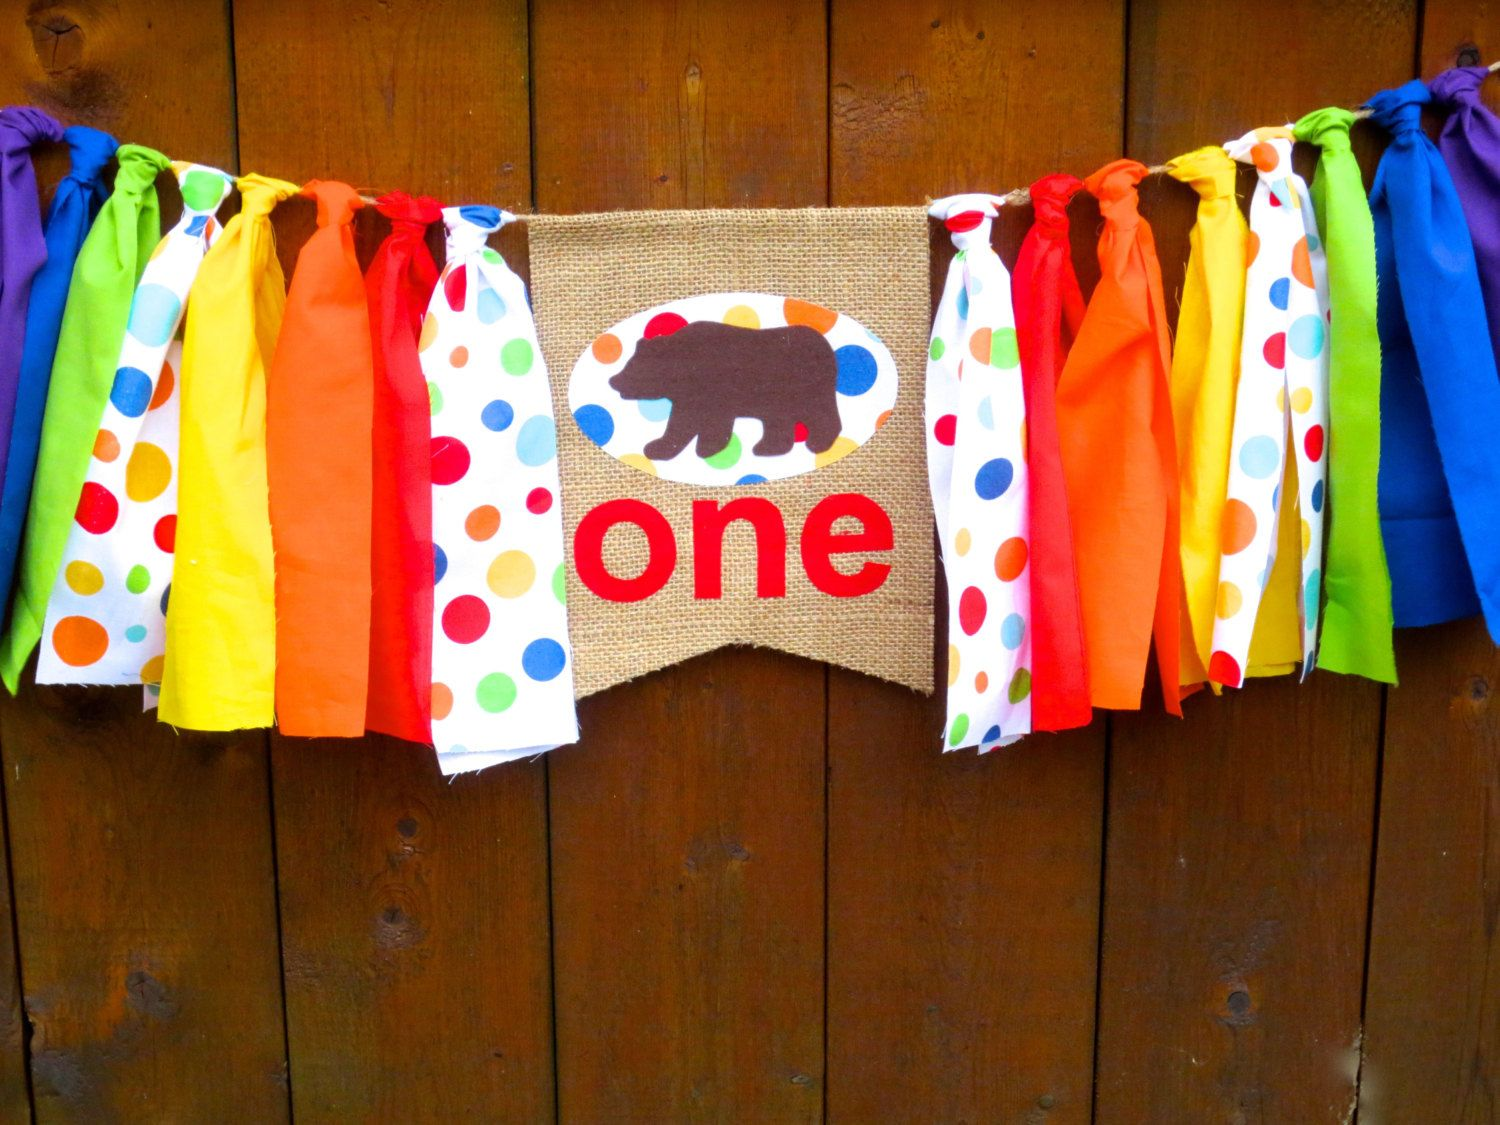 BROWN BEAR Birthday Banner Highchair High Chair Rainbow First One Garland ONEderland  Noah's Ark Woodland Teddy Bear Photo Prop Party Deco by SeacliffeCottage on Etsy https://www.etsy.com/listing/258185722/brown-bear-birthday-banner-highchair